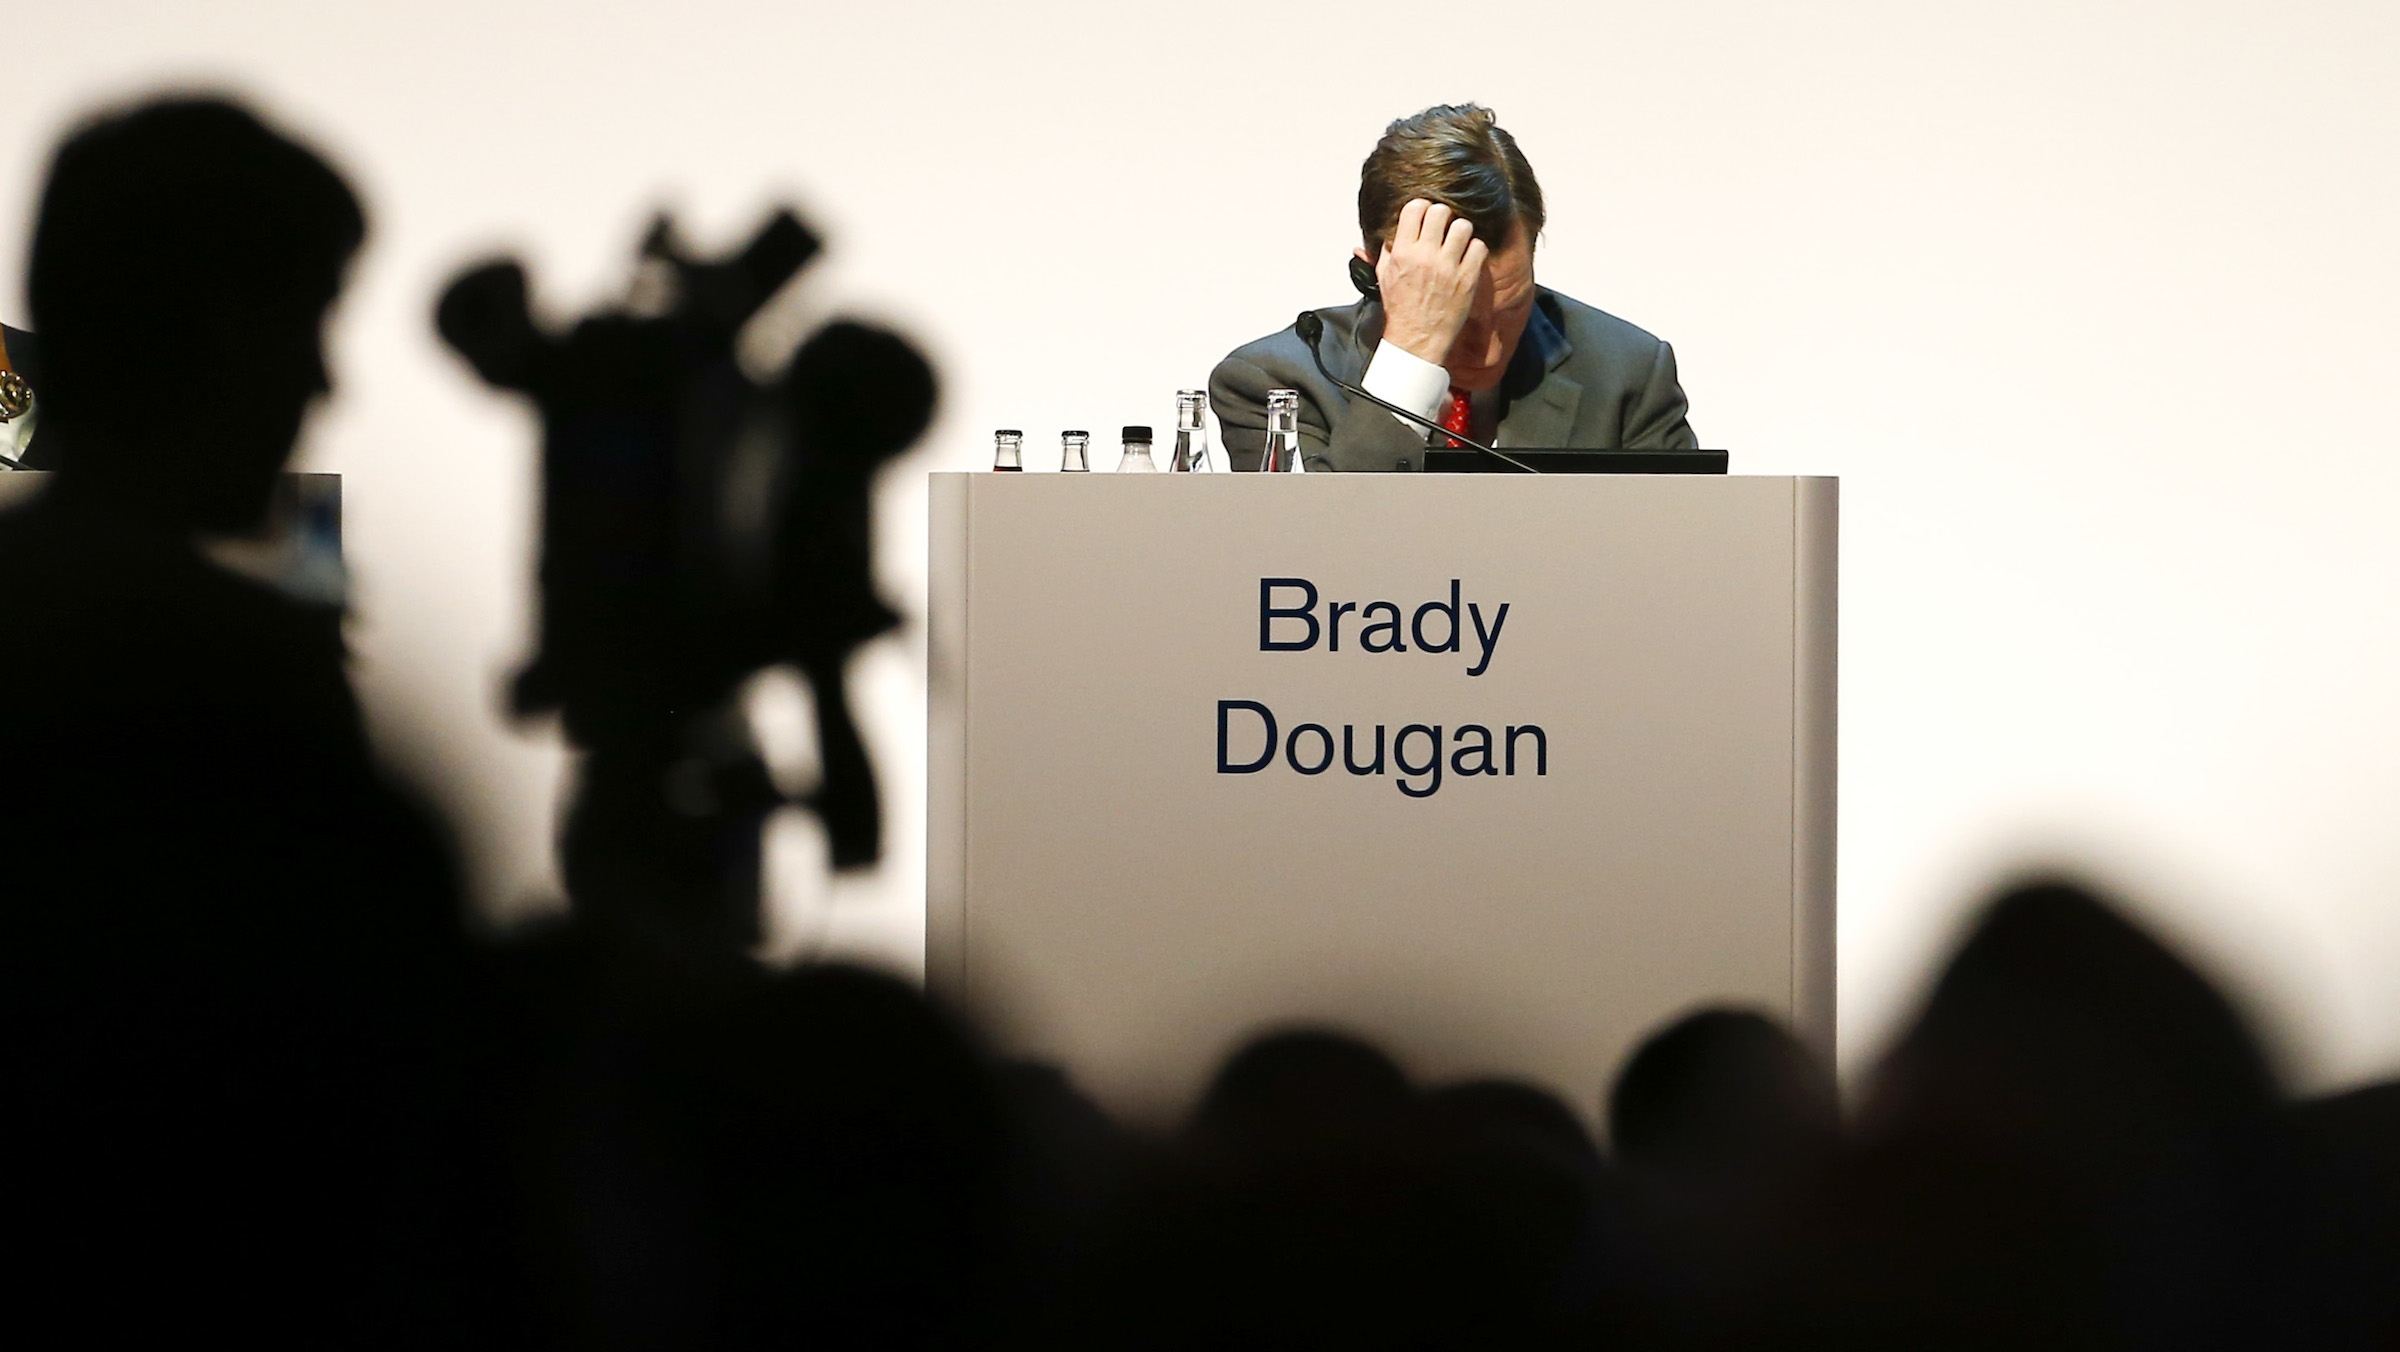 CEO Dougan Brady of Swiss bank Credit Suisse attends the company's annual shareholder meeting.